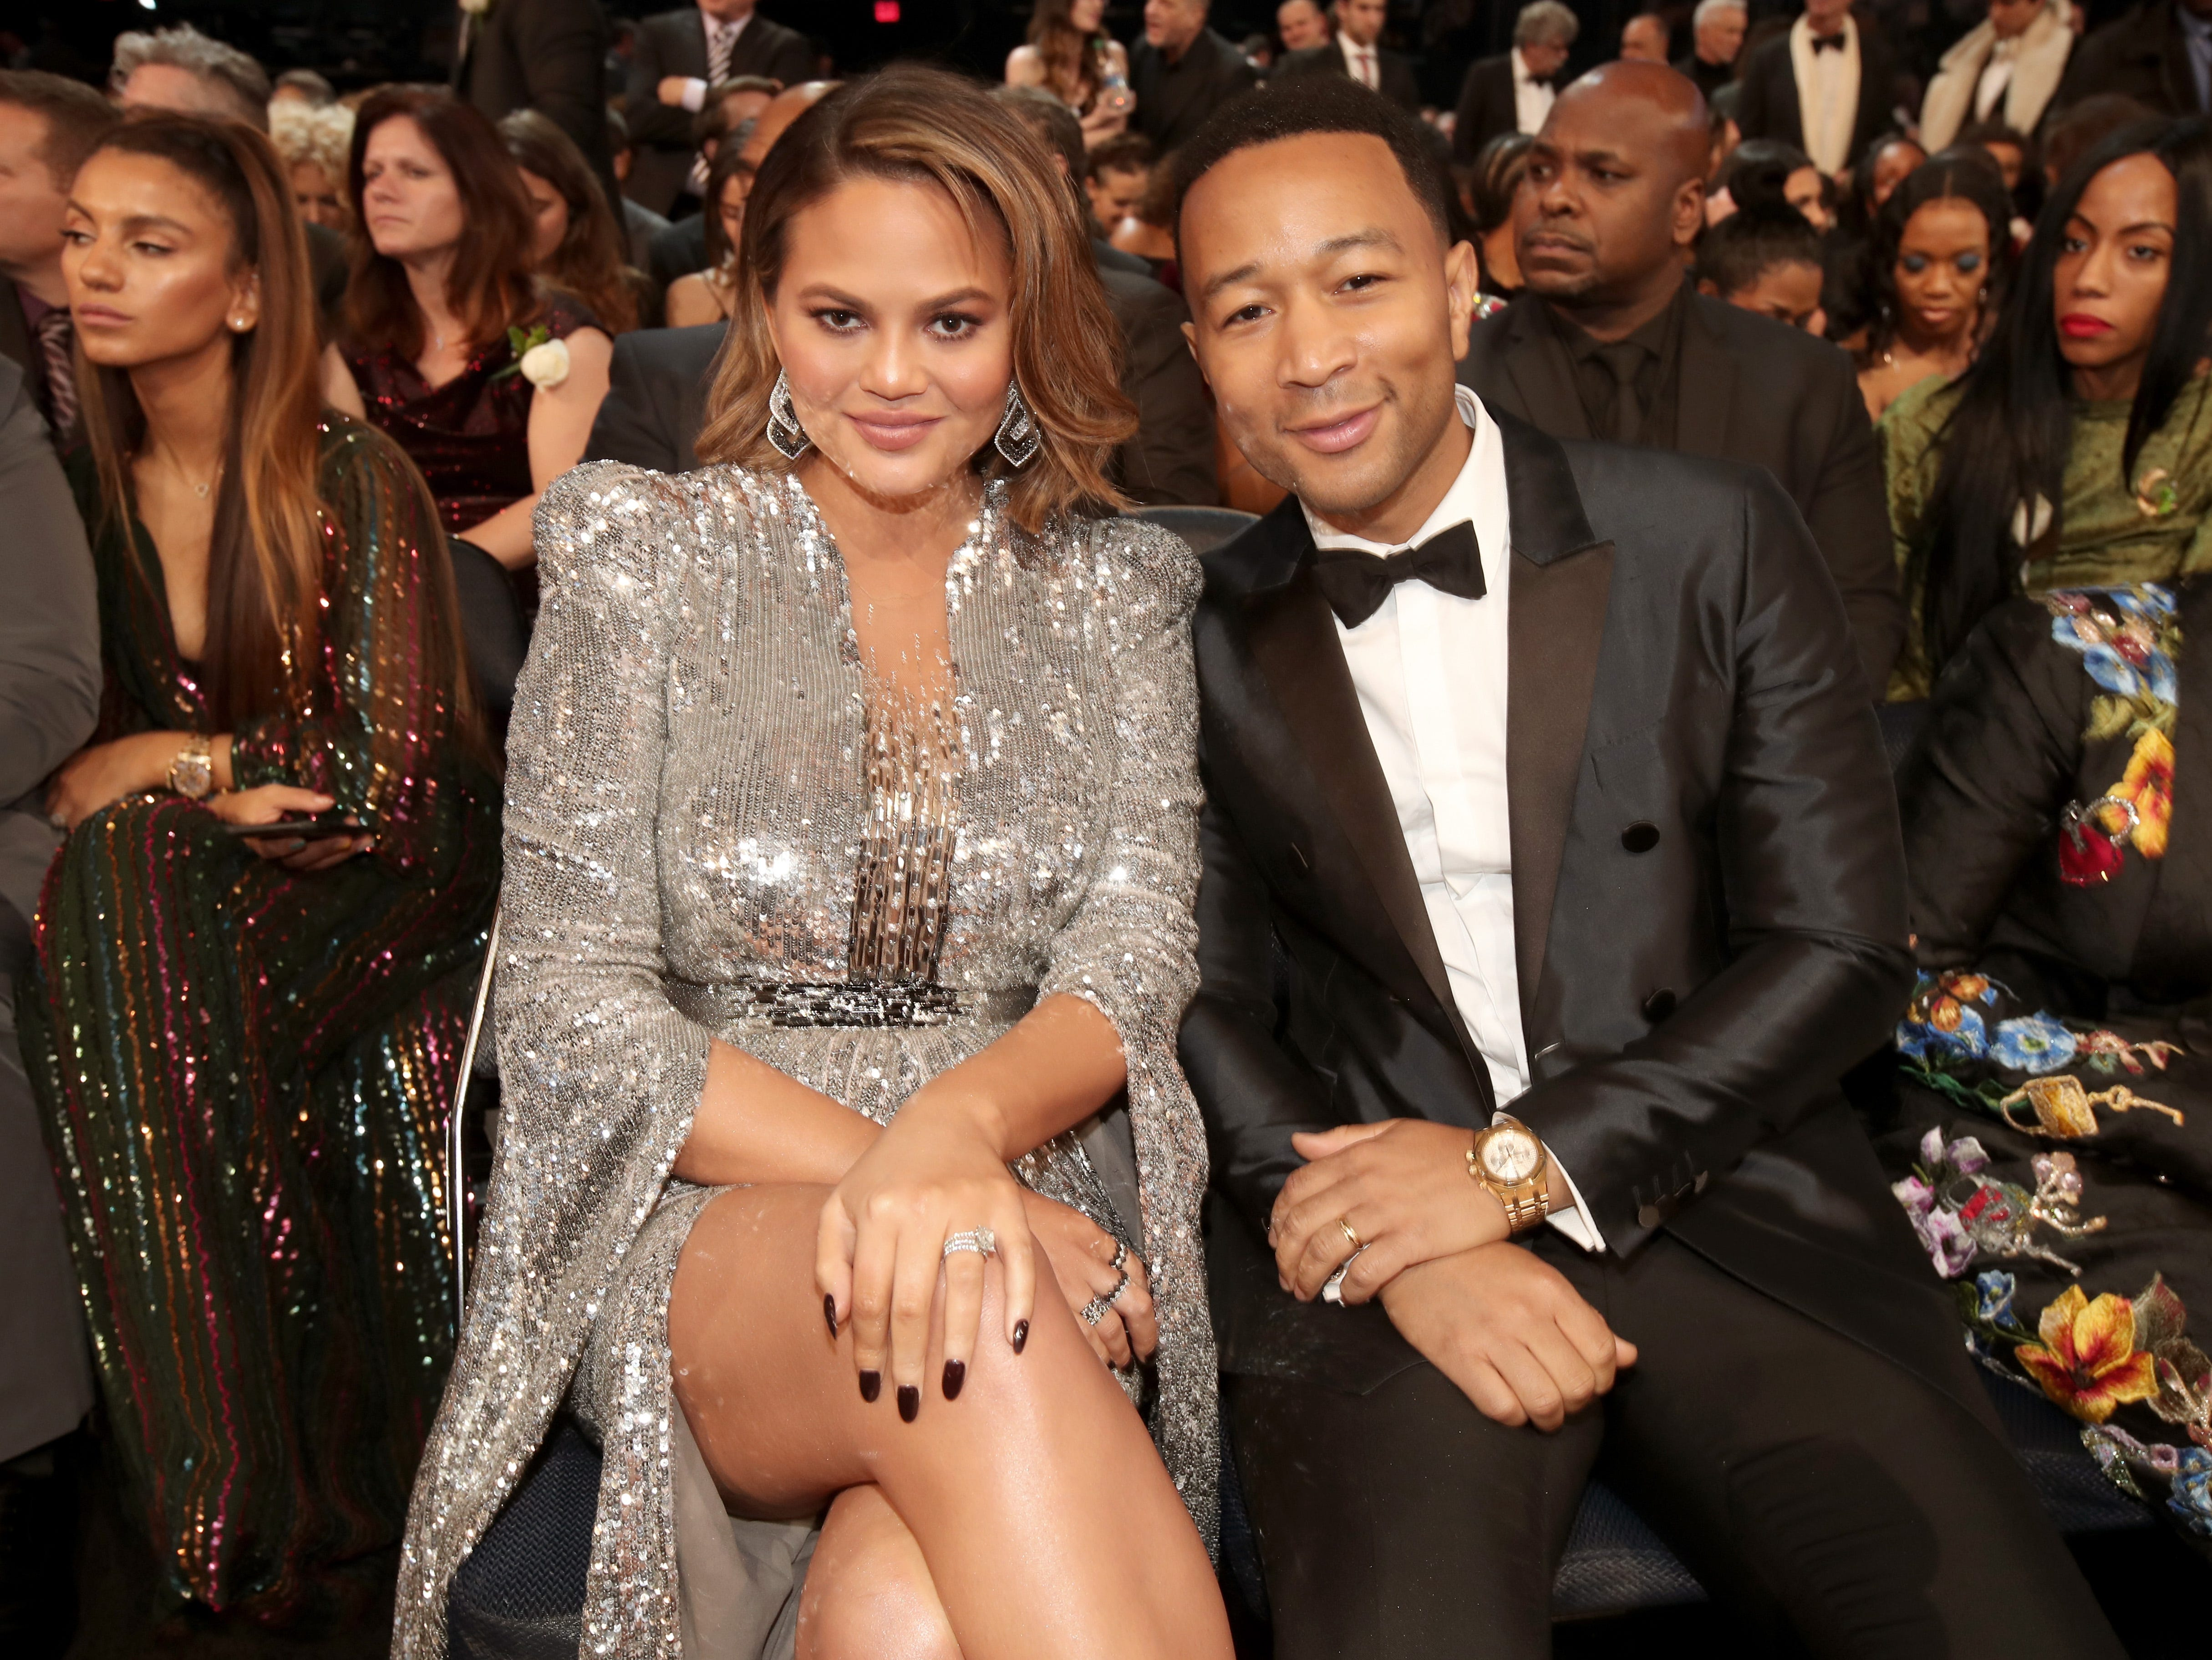 January 28: The internet's favorite couple, Chrissy Teigen and John Legend, smile from the front row at the Grammy Awards.